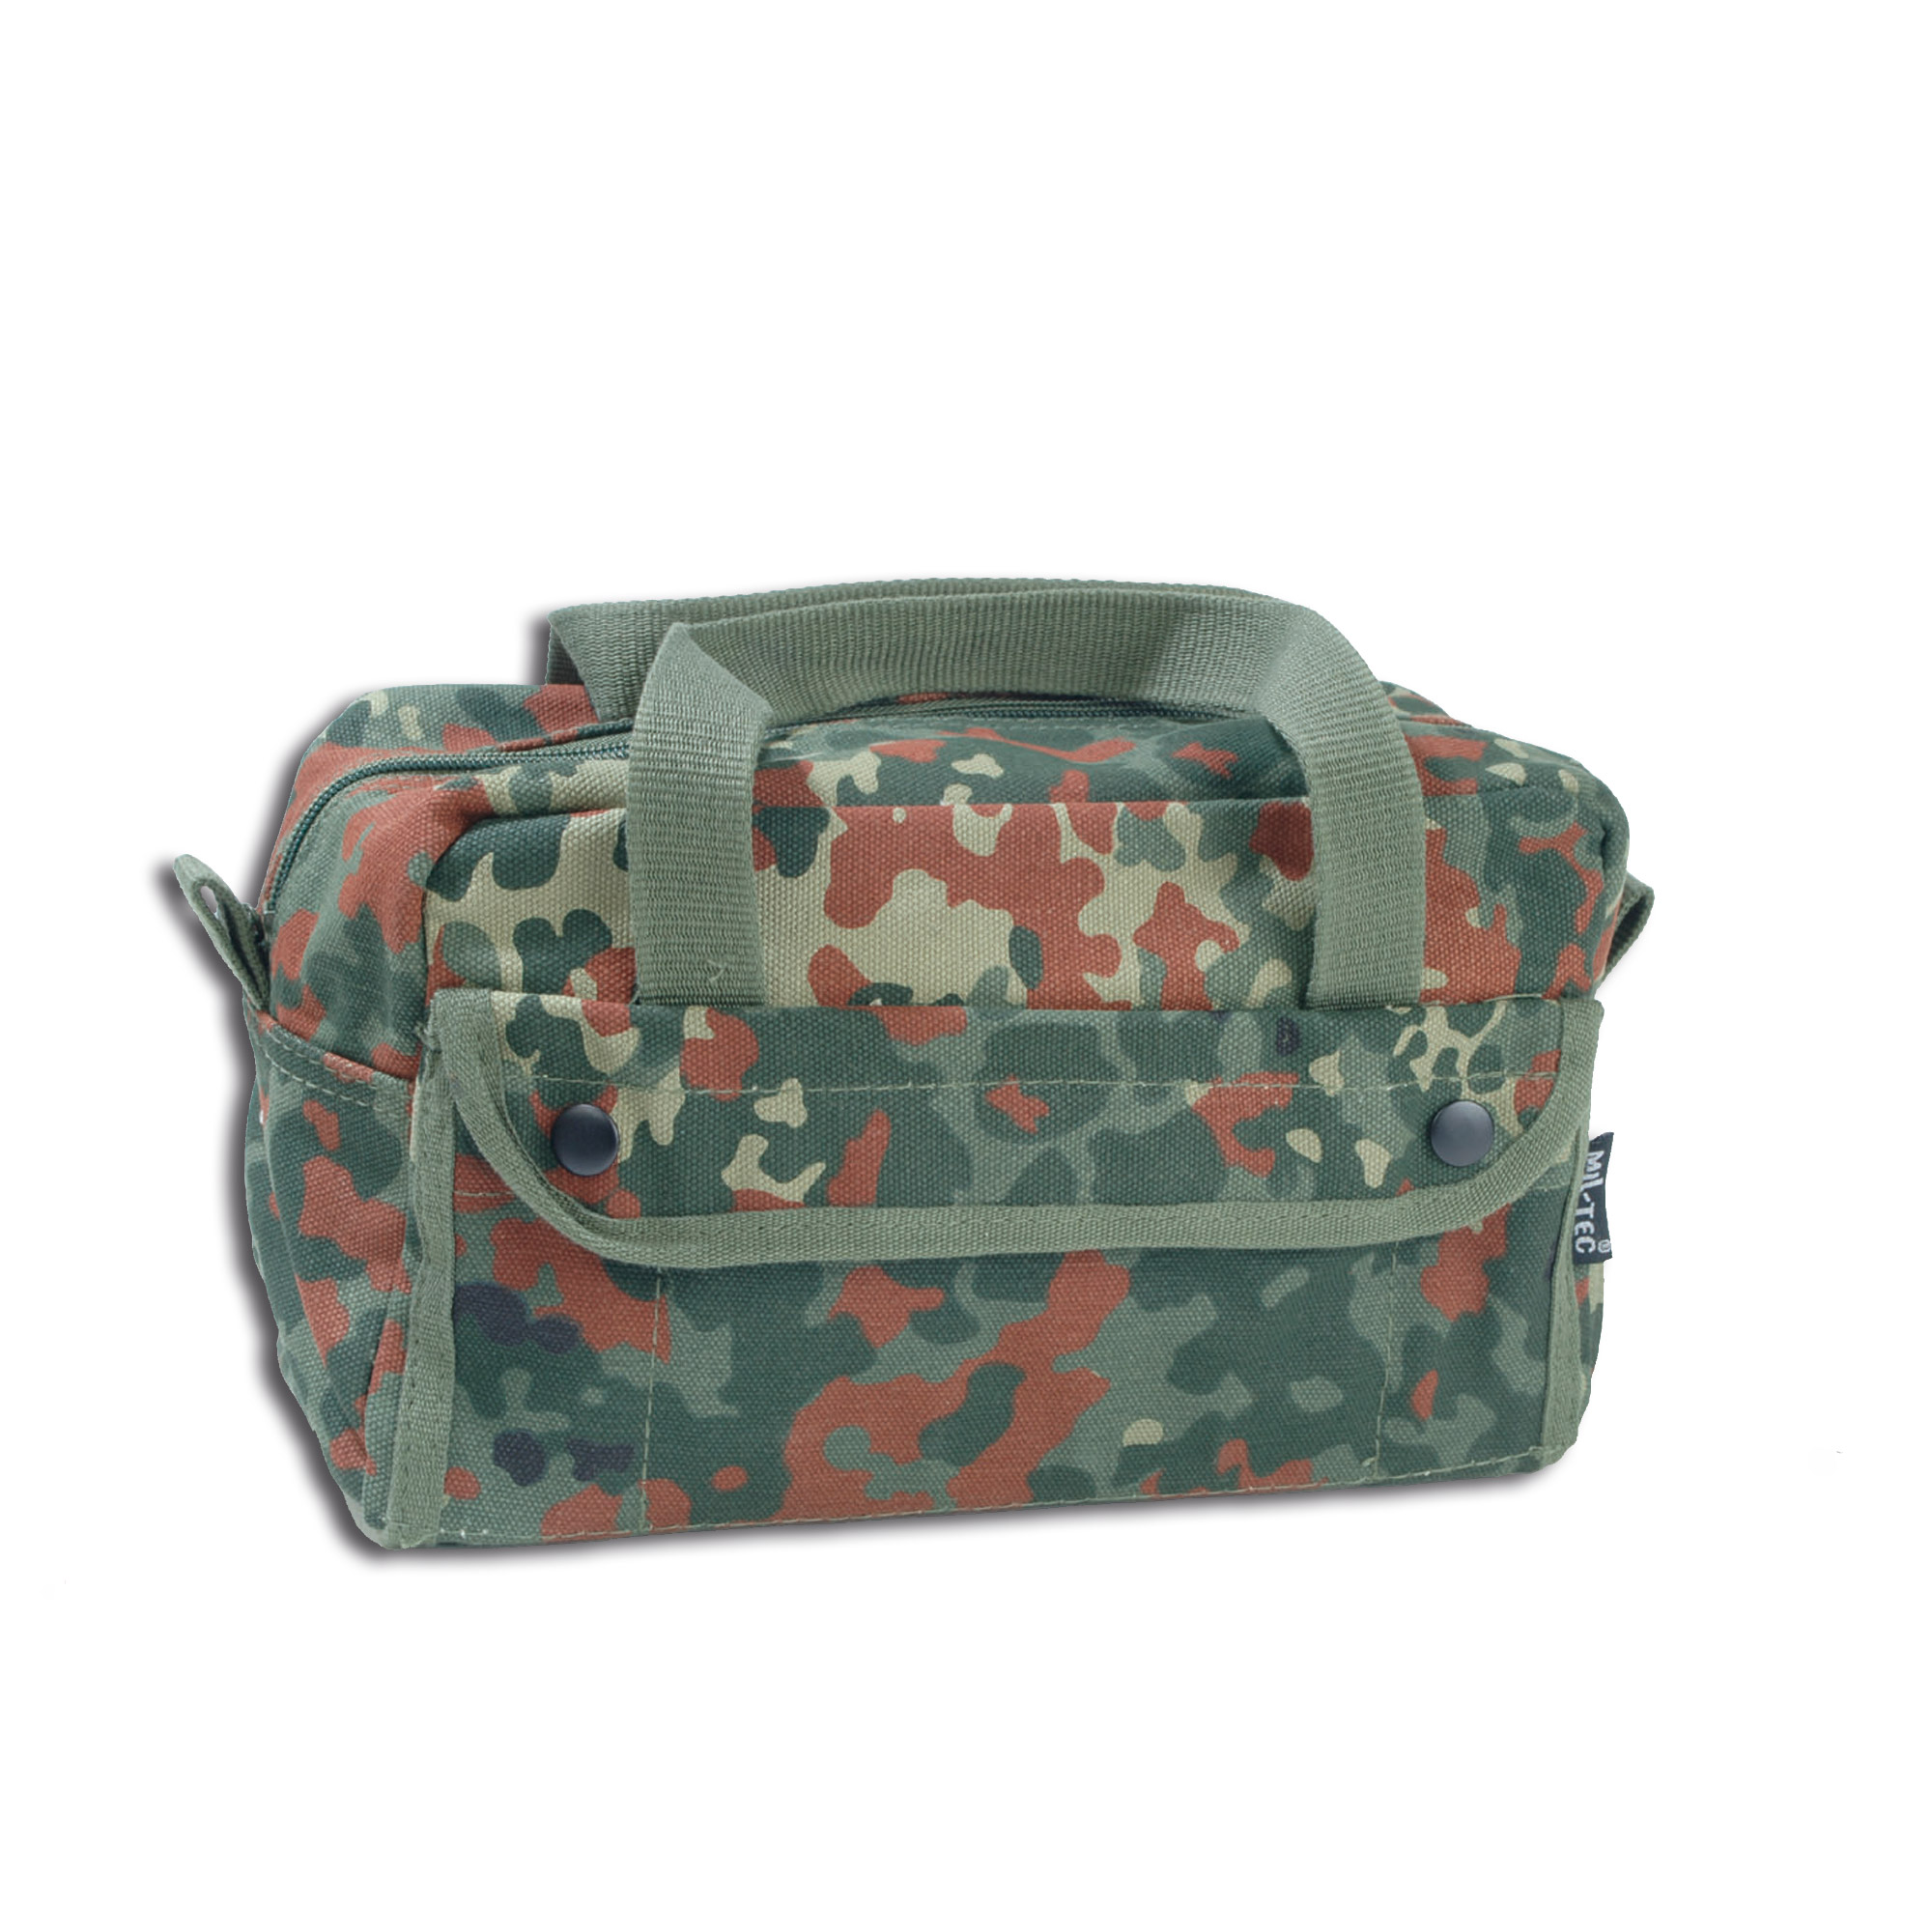 Borsa piccola Canvas flecktarn